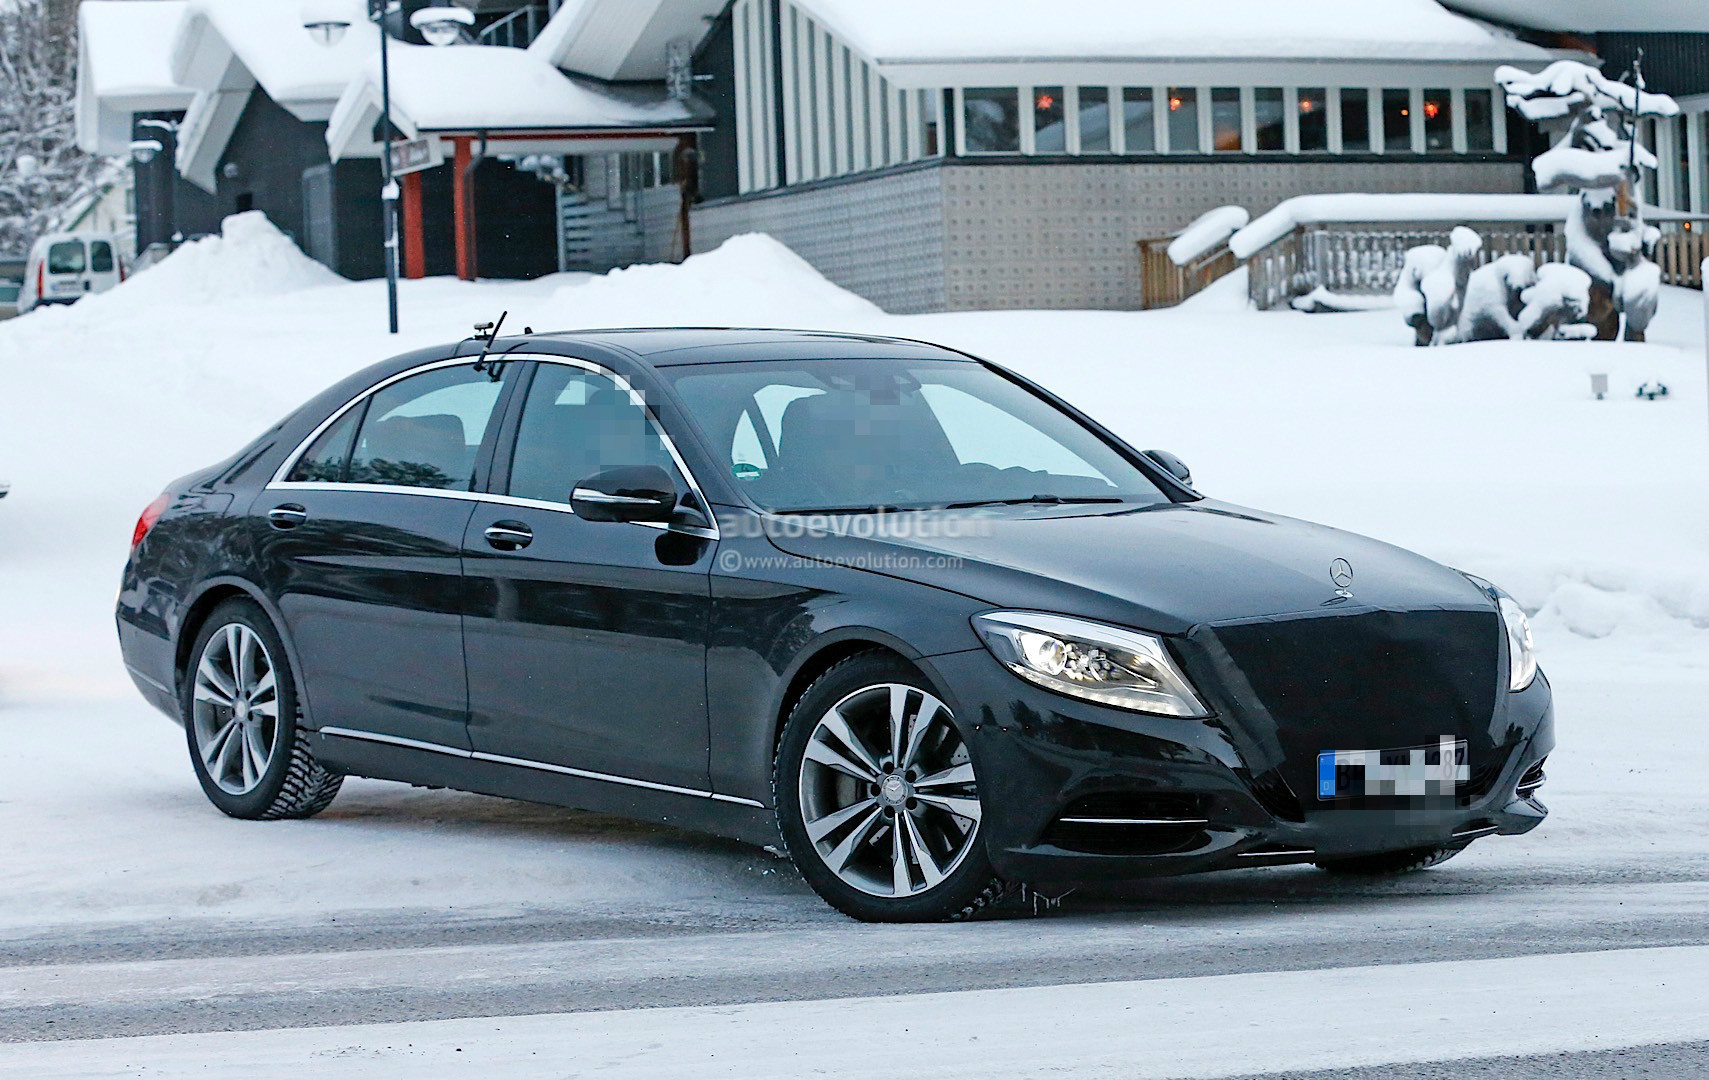 2018 mercedes benz s class facelift emerges with covered snout autoevolution. Black Bedroom Furniture Sets. Home Design Ideas